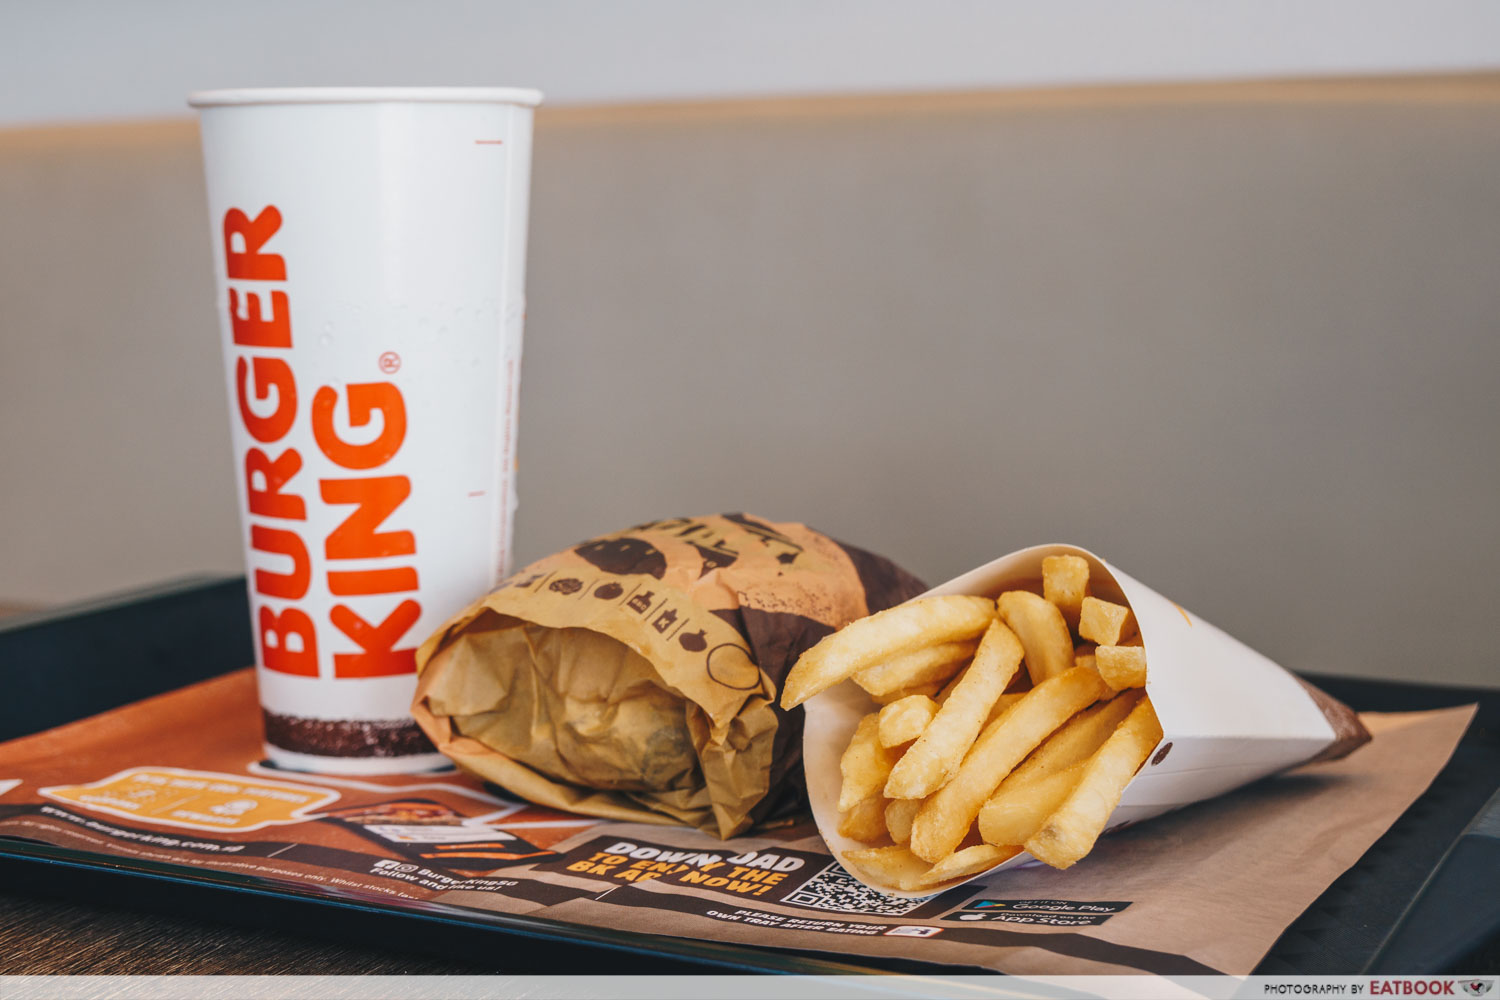 Burger King - Truffle Mayo Meal